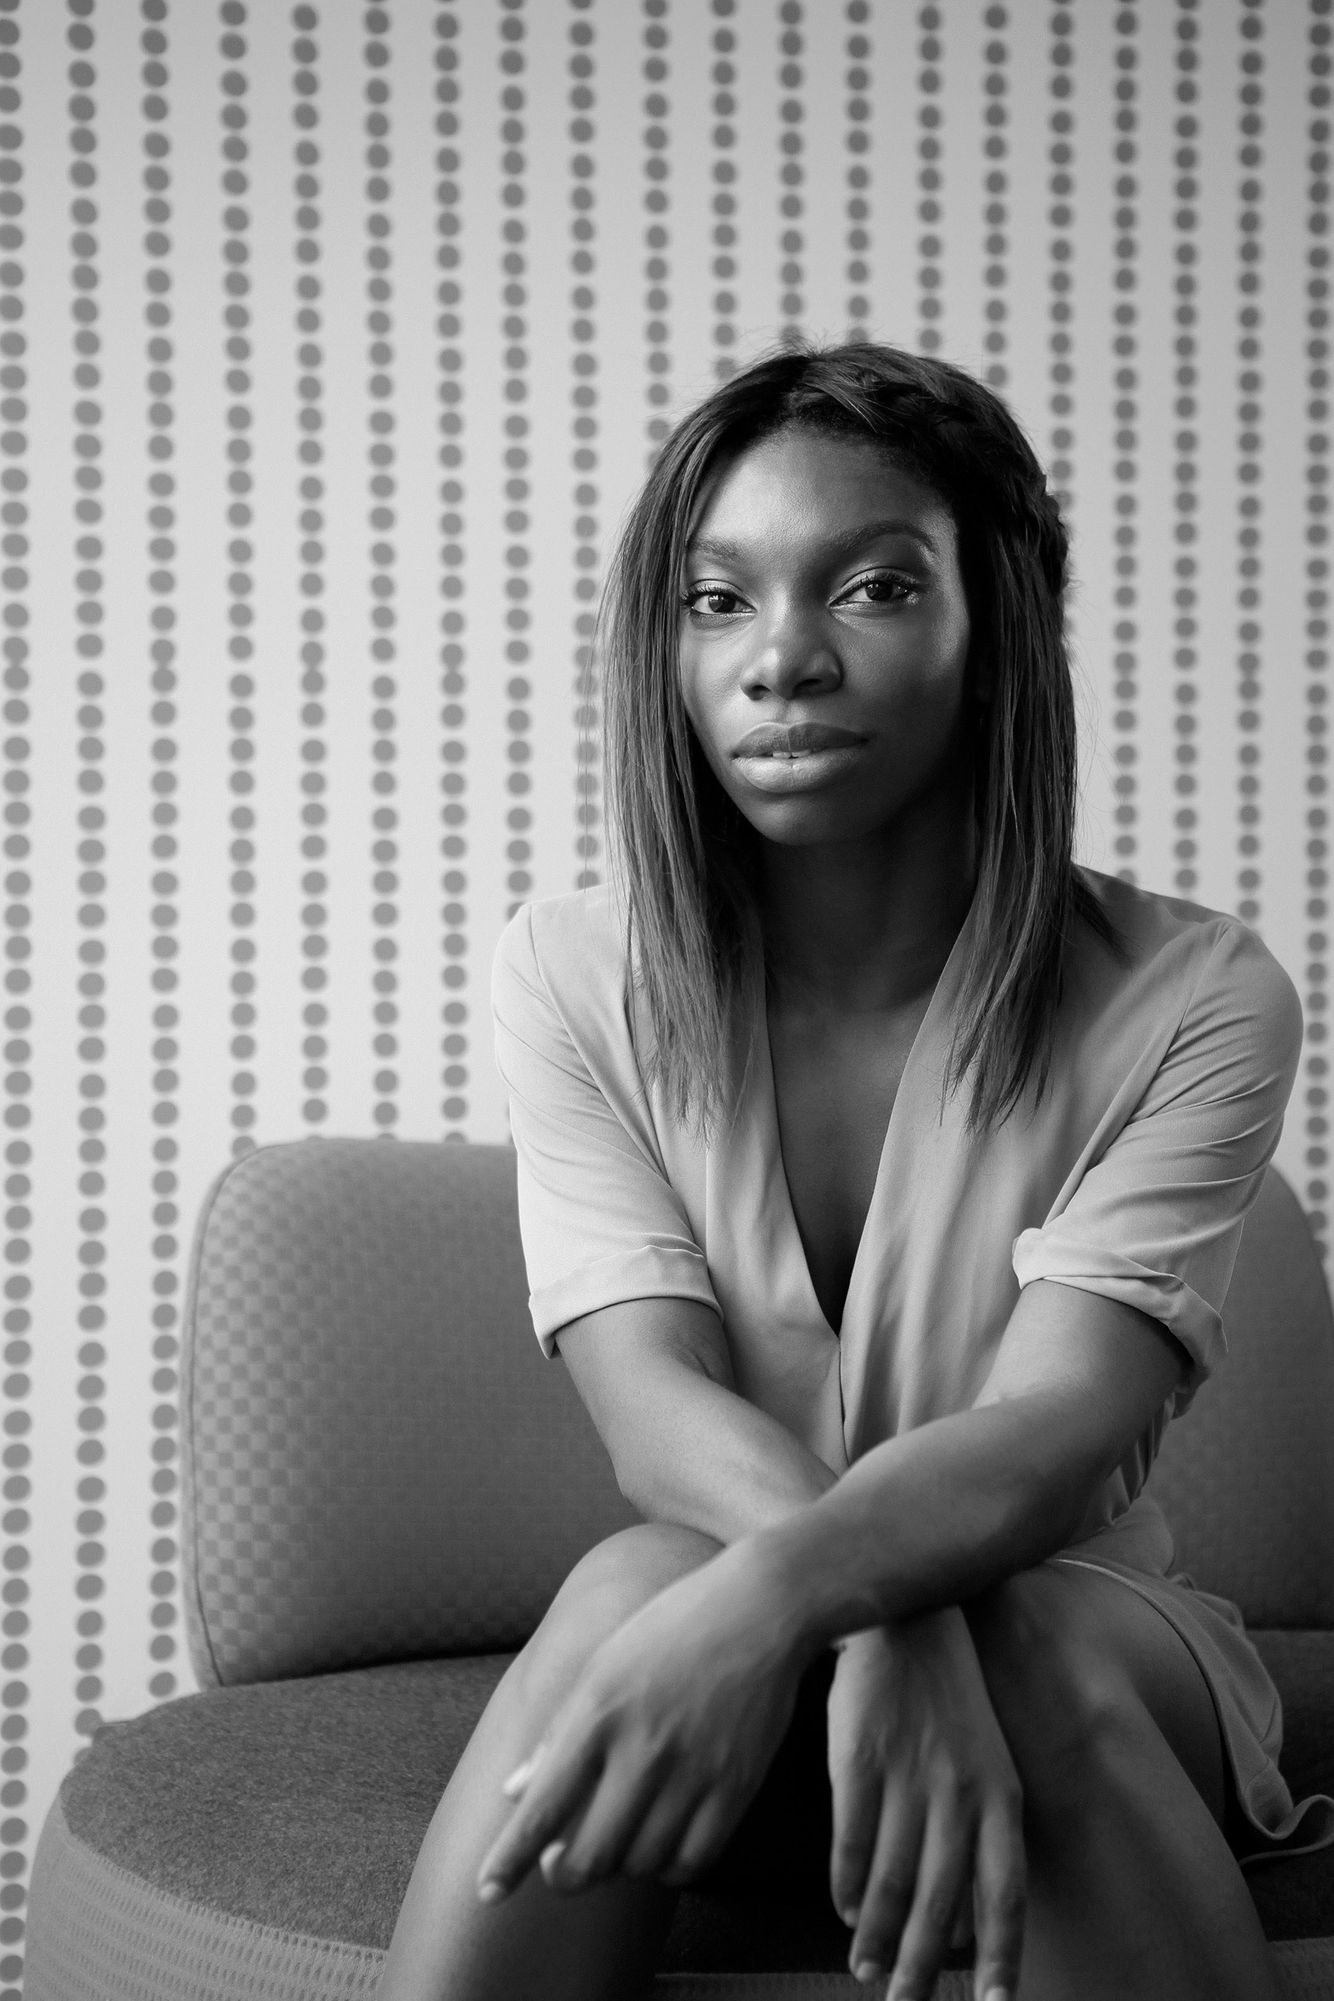 Actress, writer and singer Michaela Coel